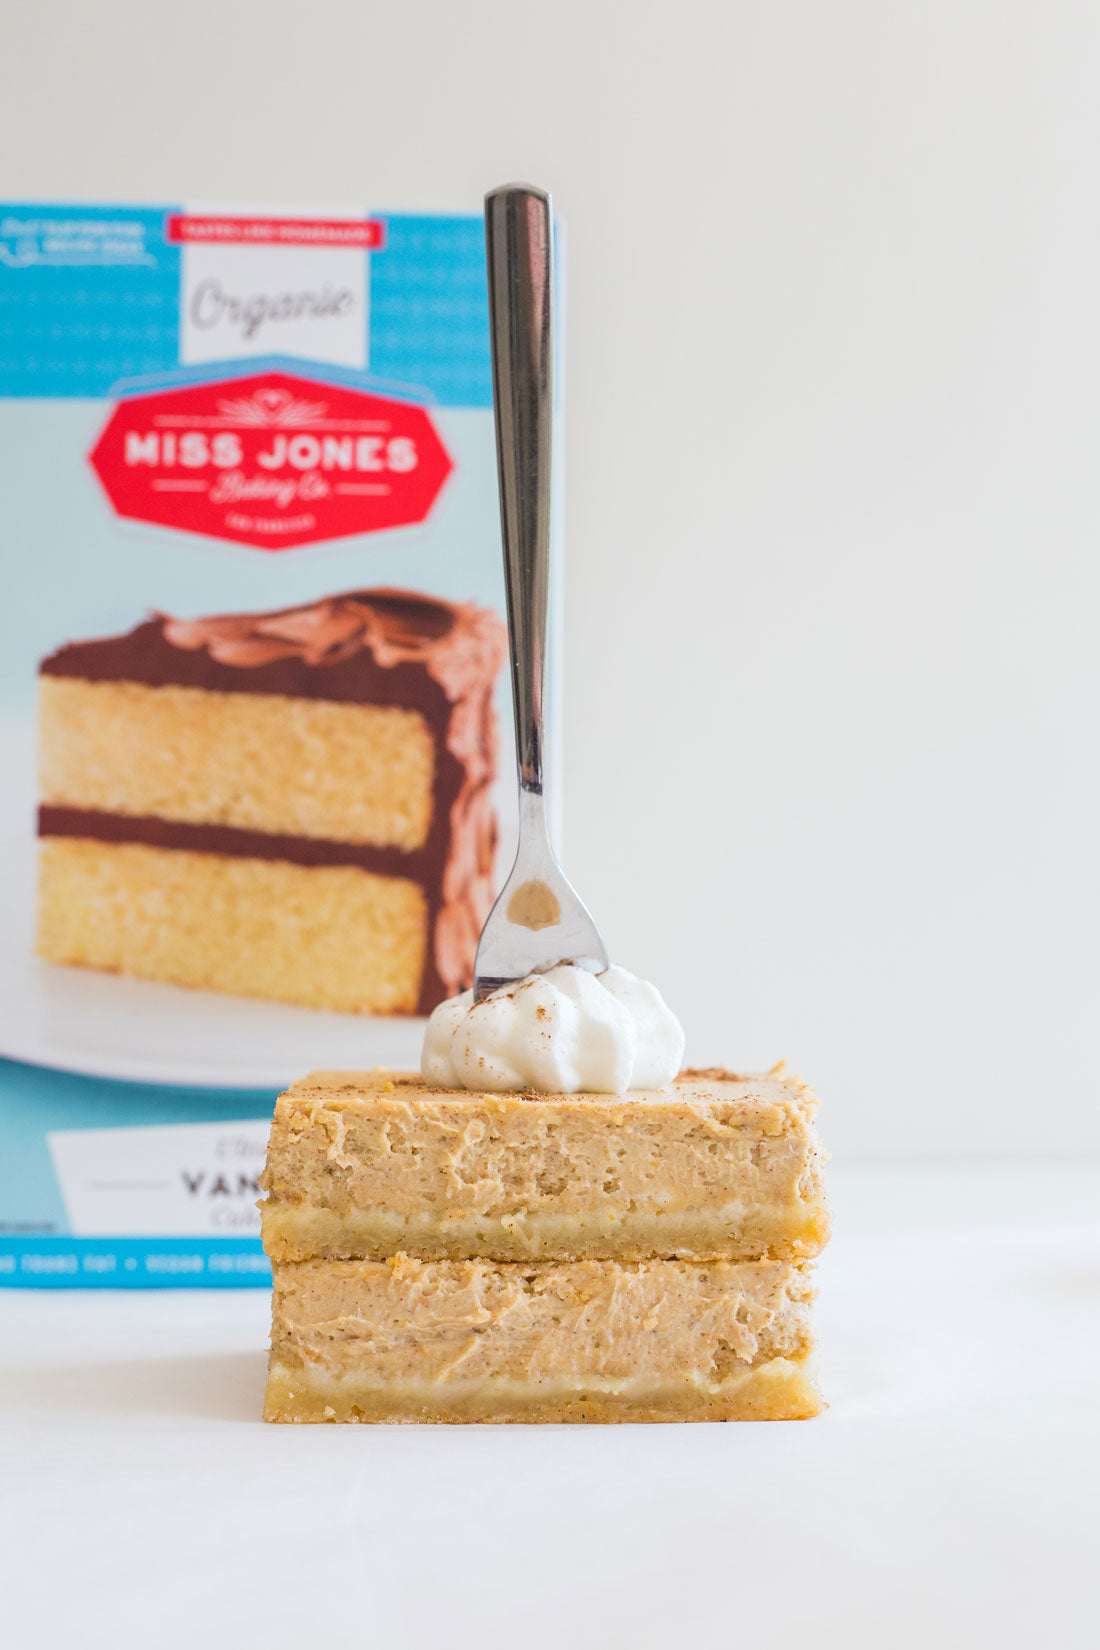 Side image of Miss Jones Baking Co Easy Pumpkin Cheesecake Bars with Miss Jones Baking Organic Vanilla Cake Mix in the background